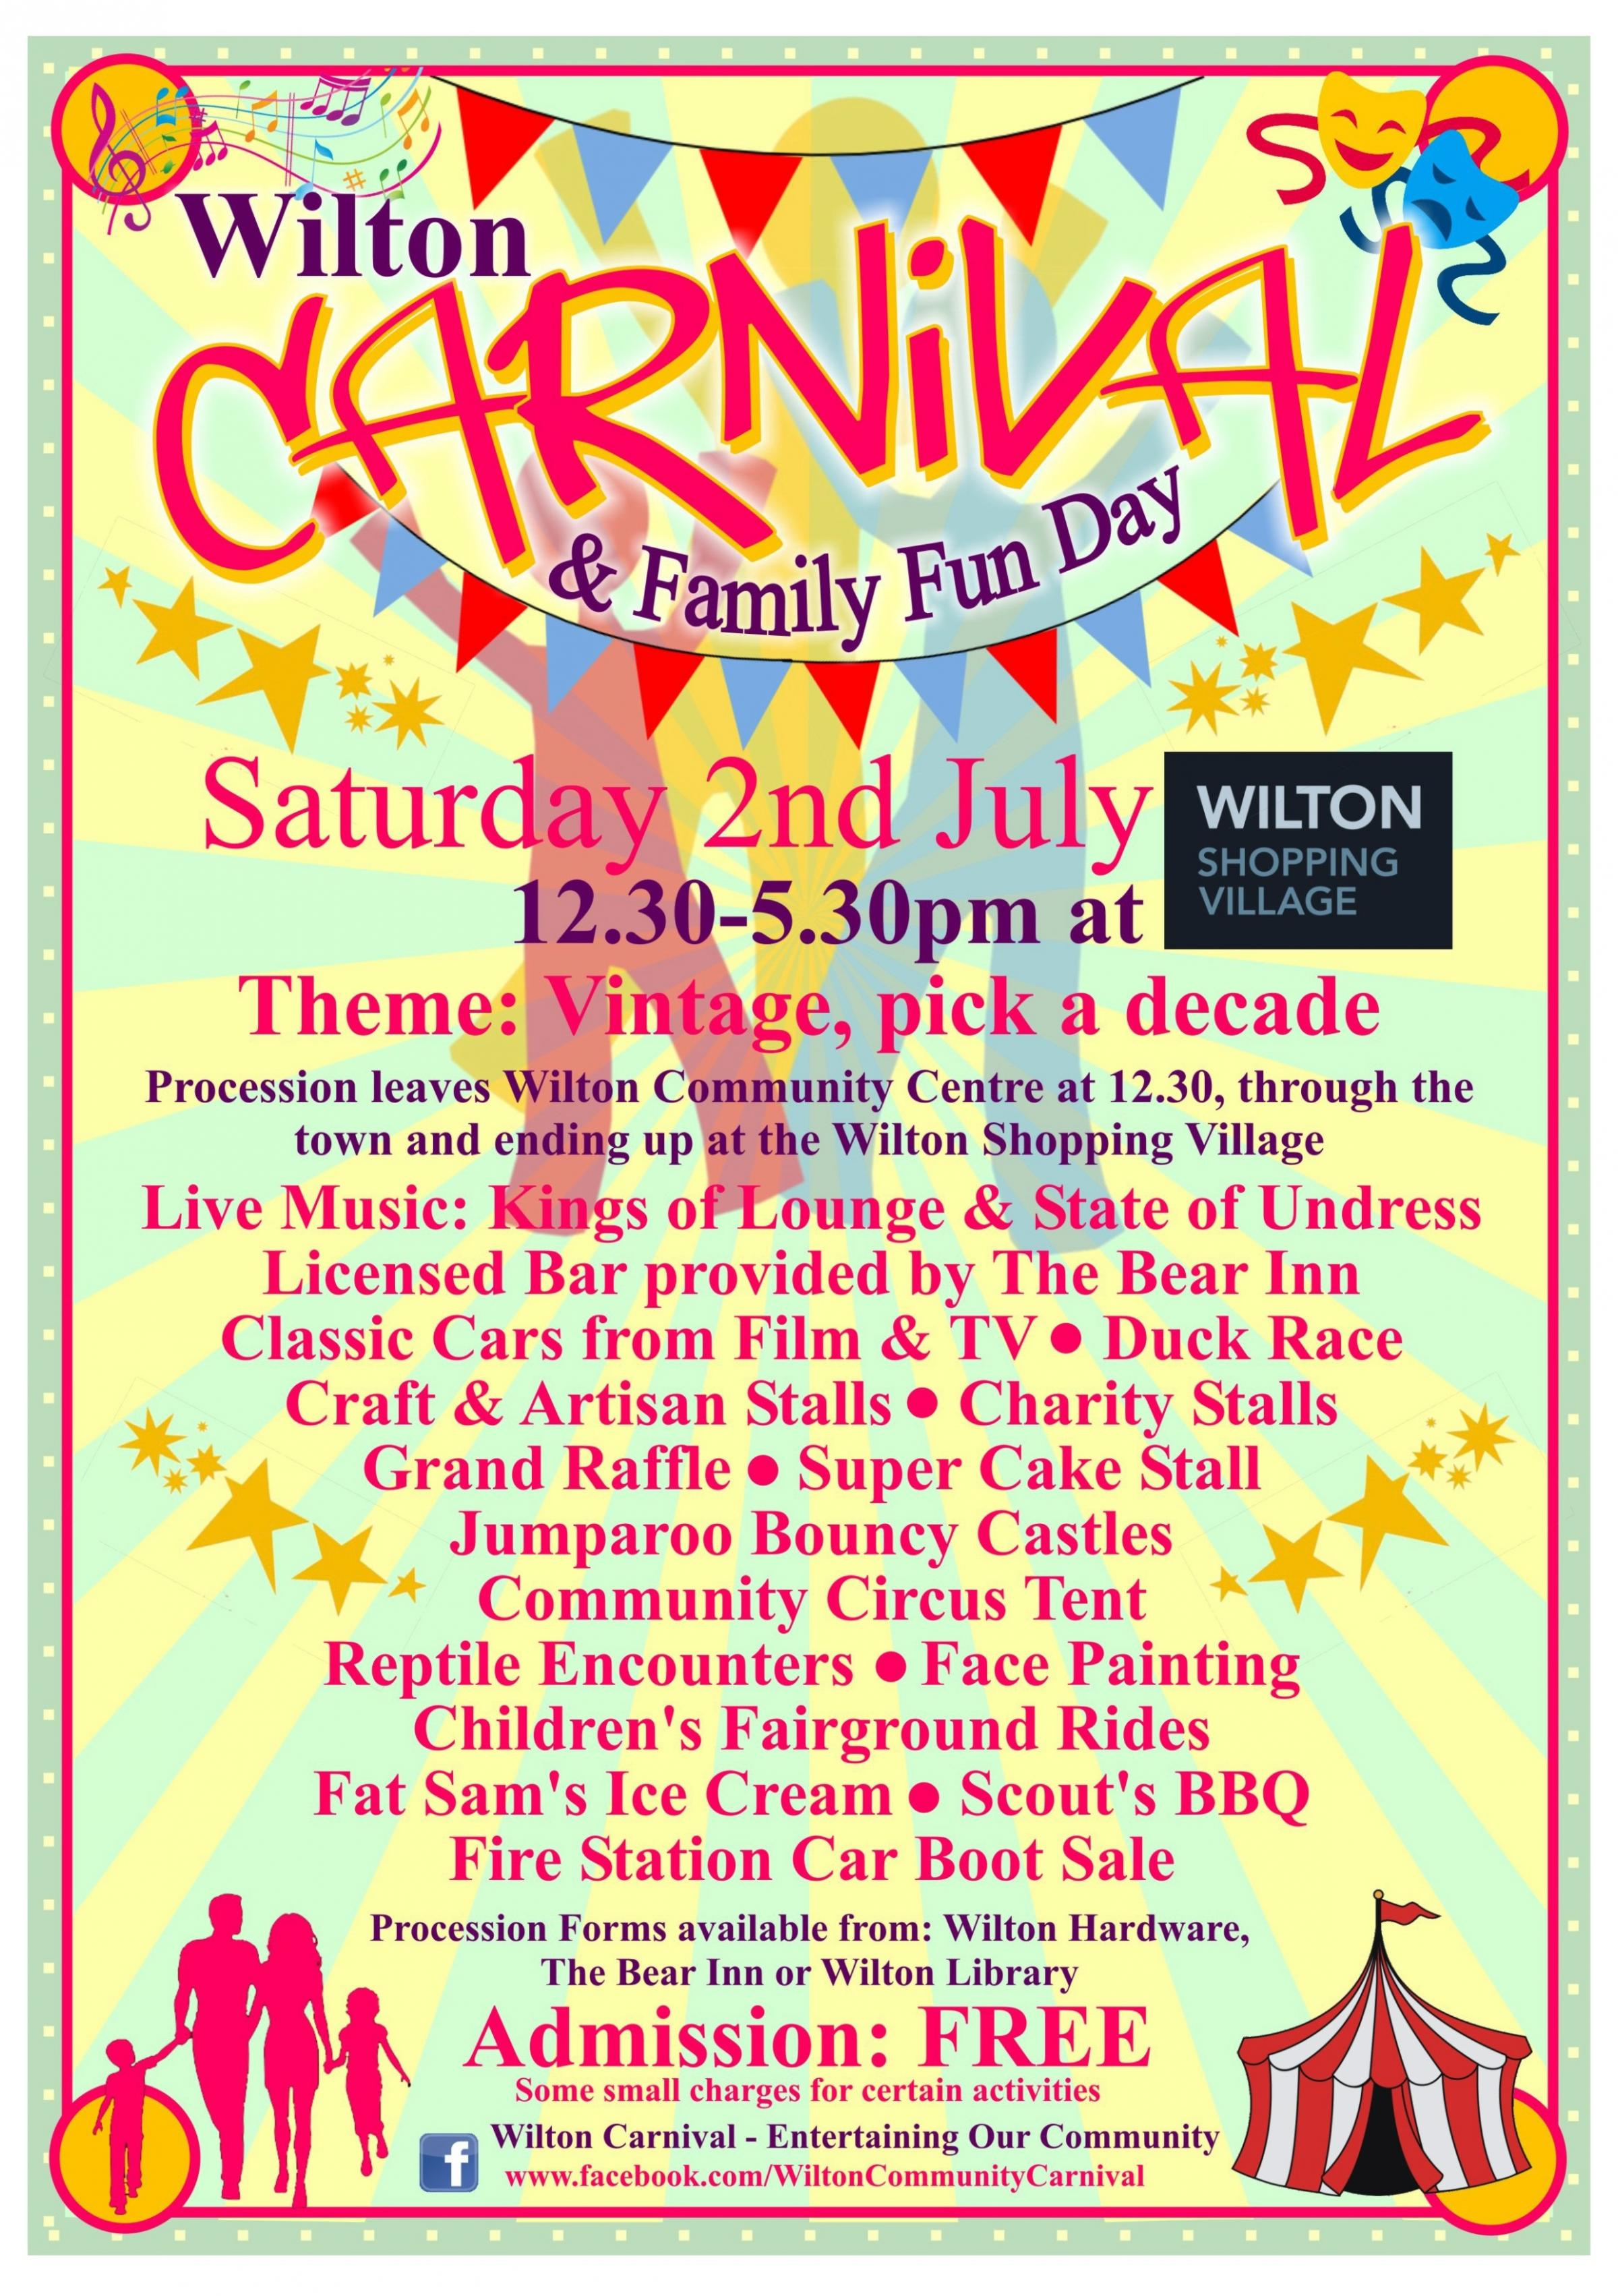 Wilton Carnival & Family Fun Day July 2nd